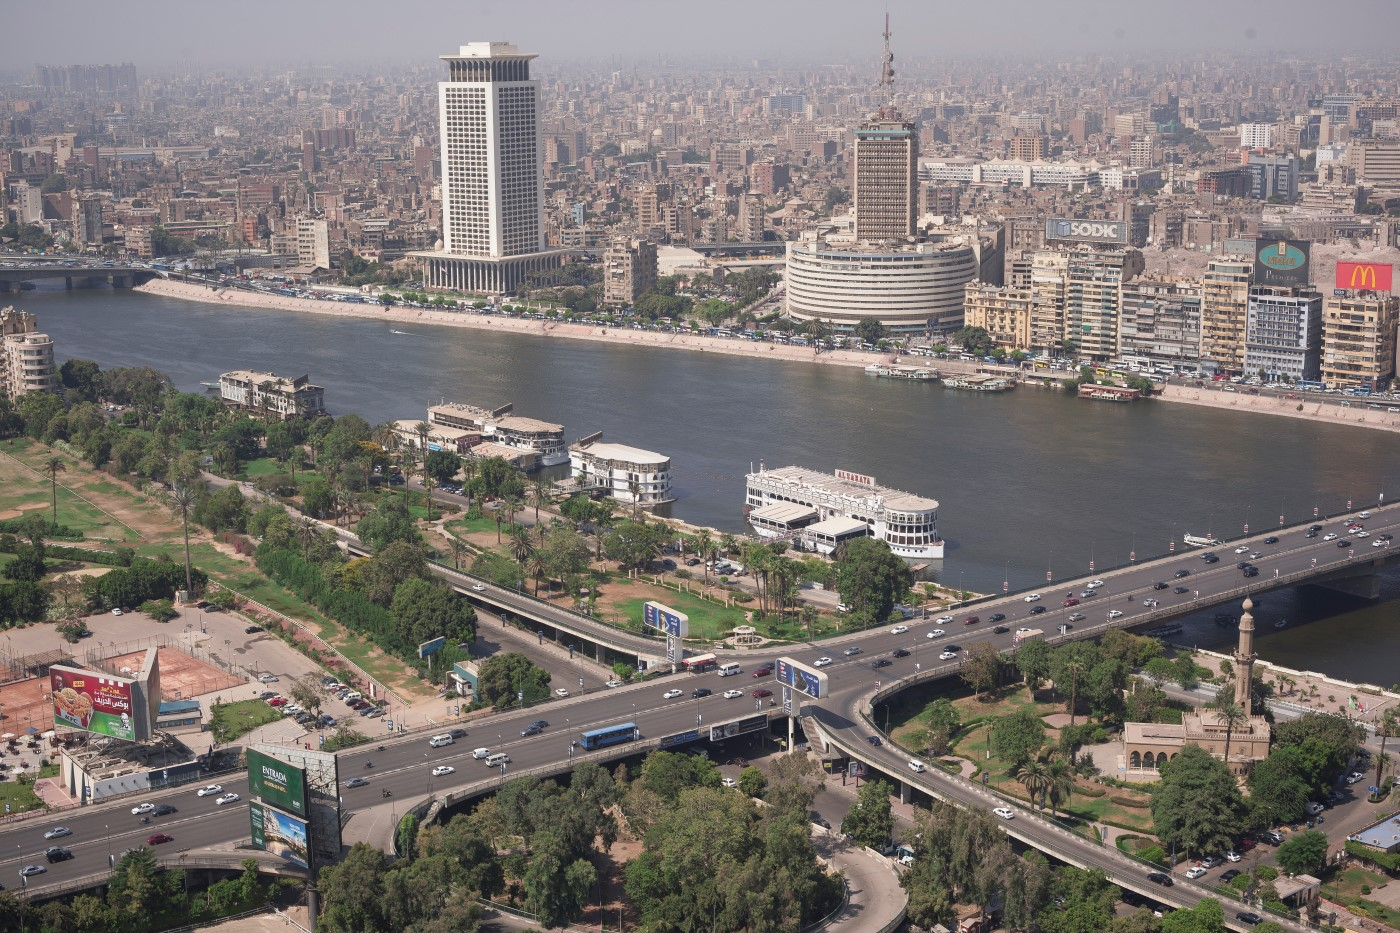 Egypt's Largest Bank Joins Ripple Network for Cross-Border Payments